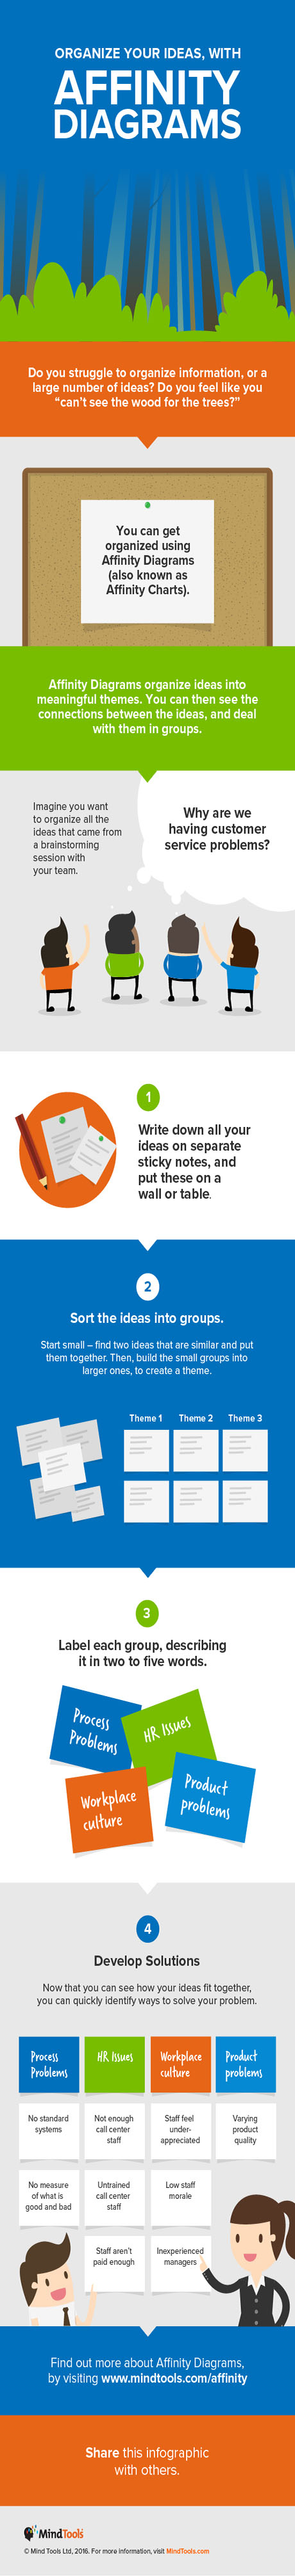 Organize Your Ideas, With Affinity Diagrams